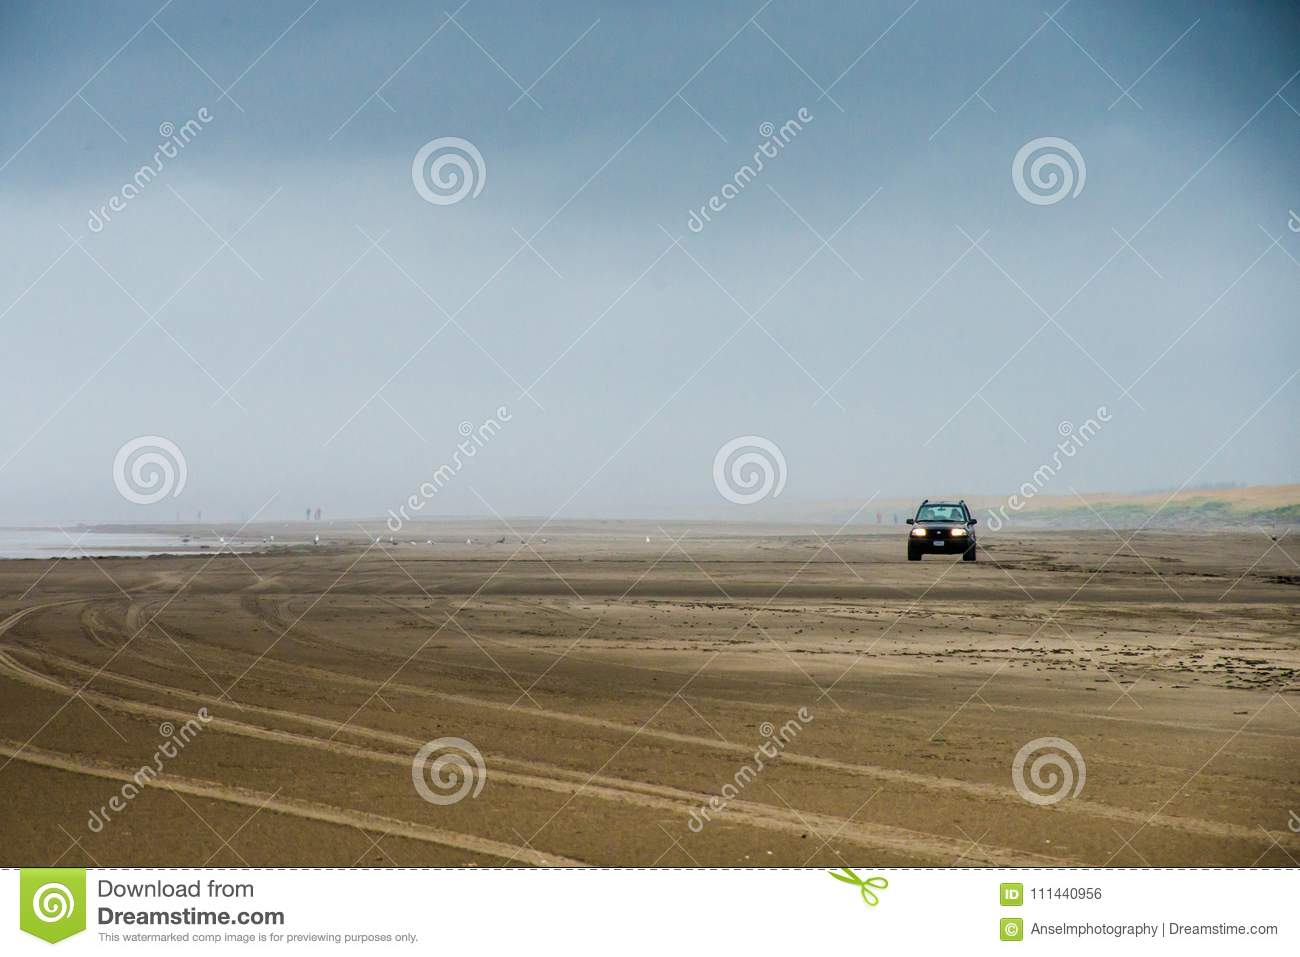 A Lone Car Driving On A Large Field Of Sand Beach In Foggy